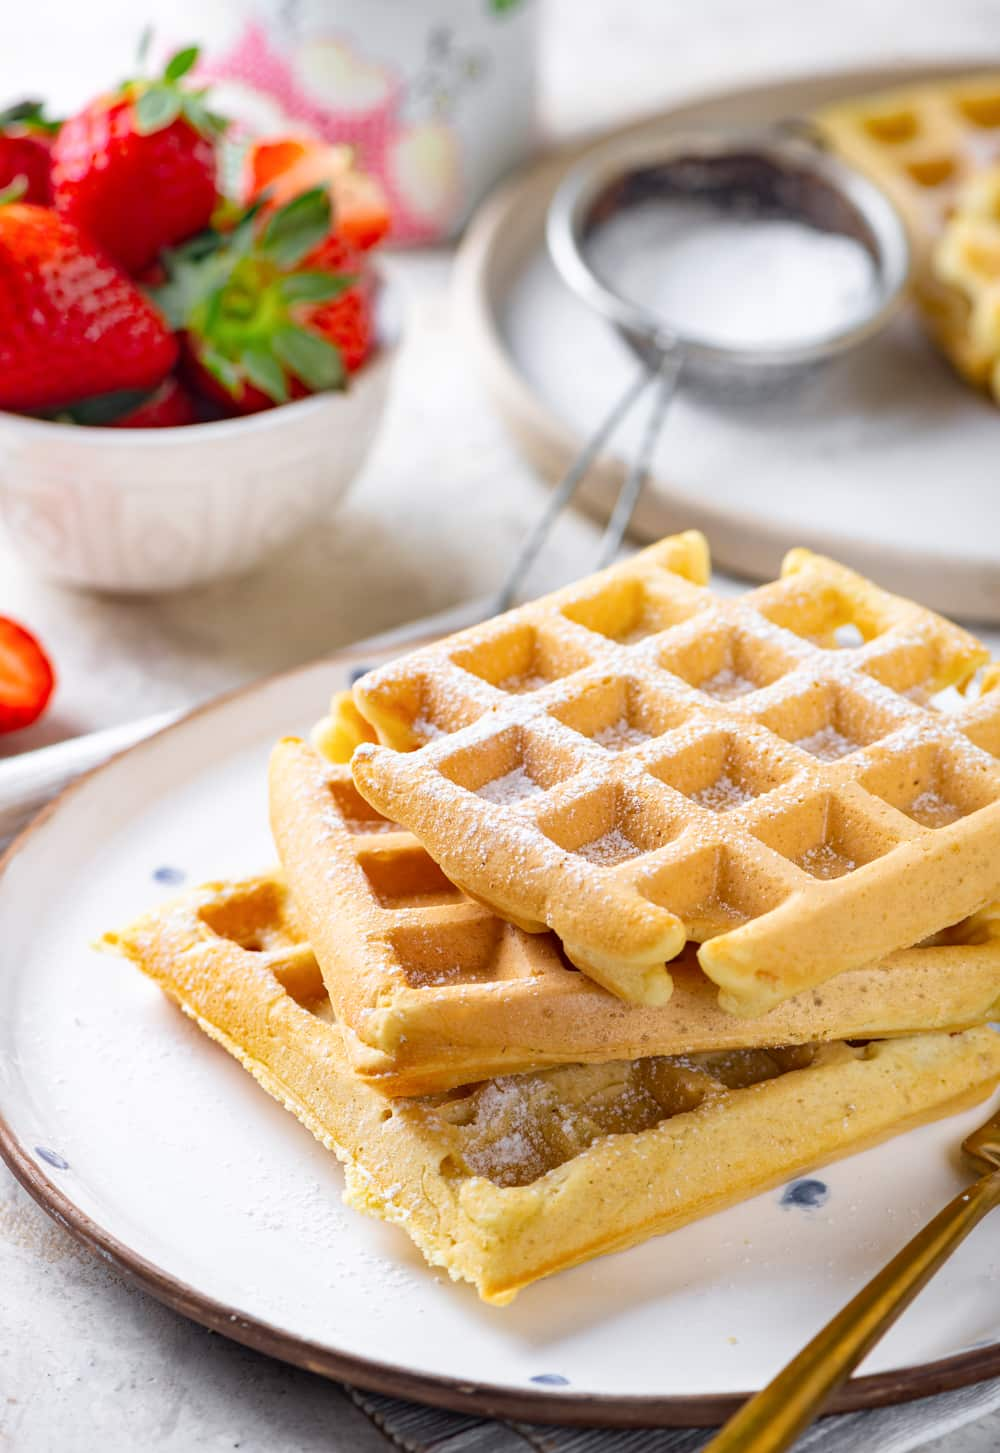 A stack of three square vegan waffles with powdered sugar on top. The waffles are on a white plate and there is a small white bowl of strawberries behind the plate to the left with a sifter of powdered sugar to the right.